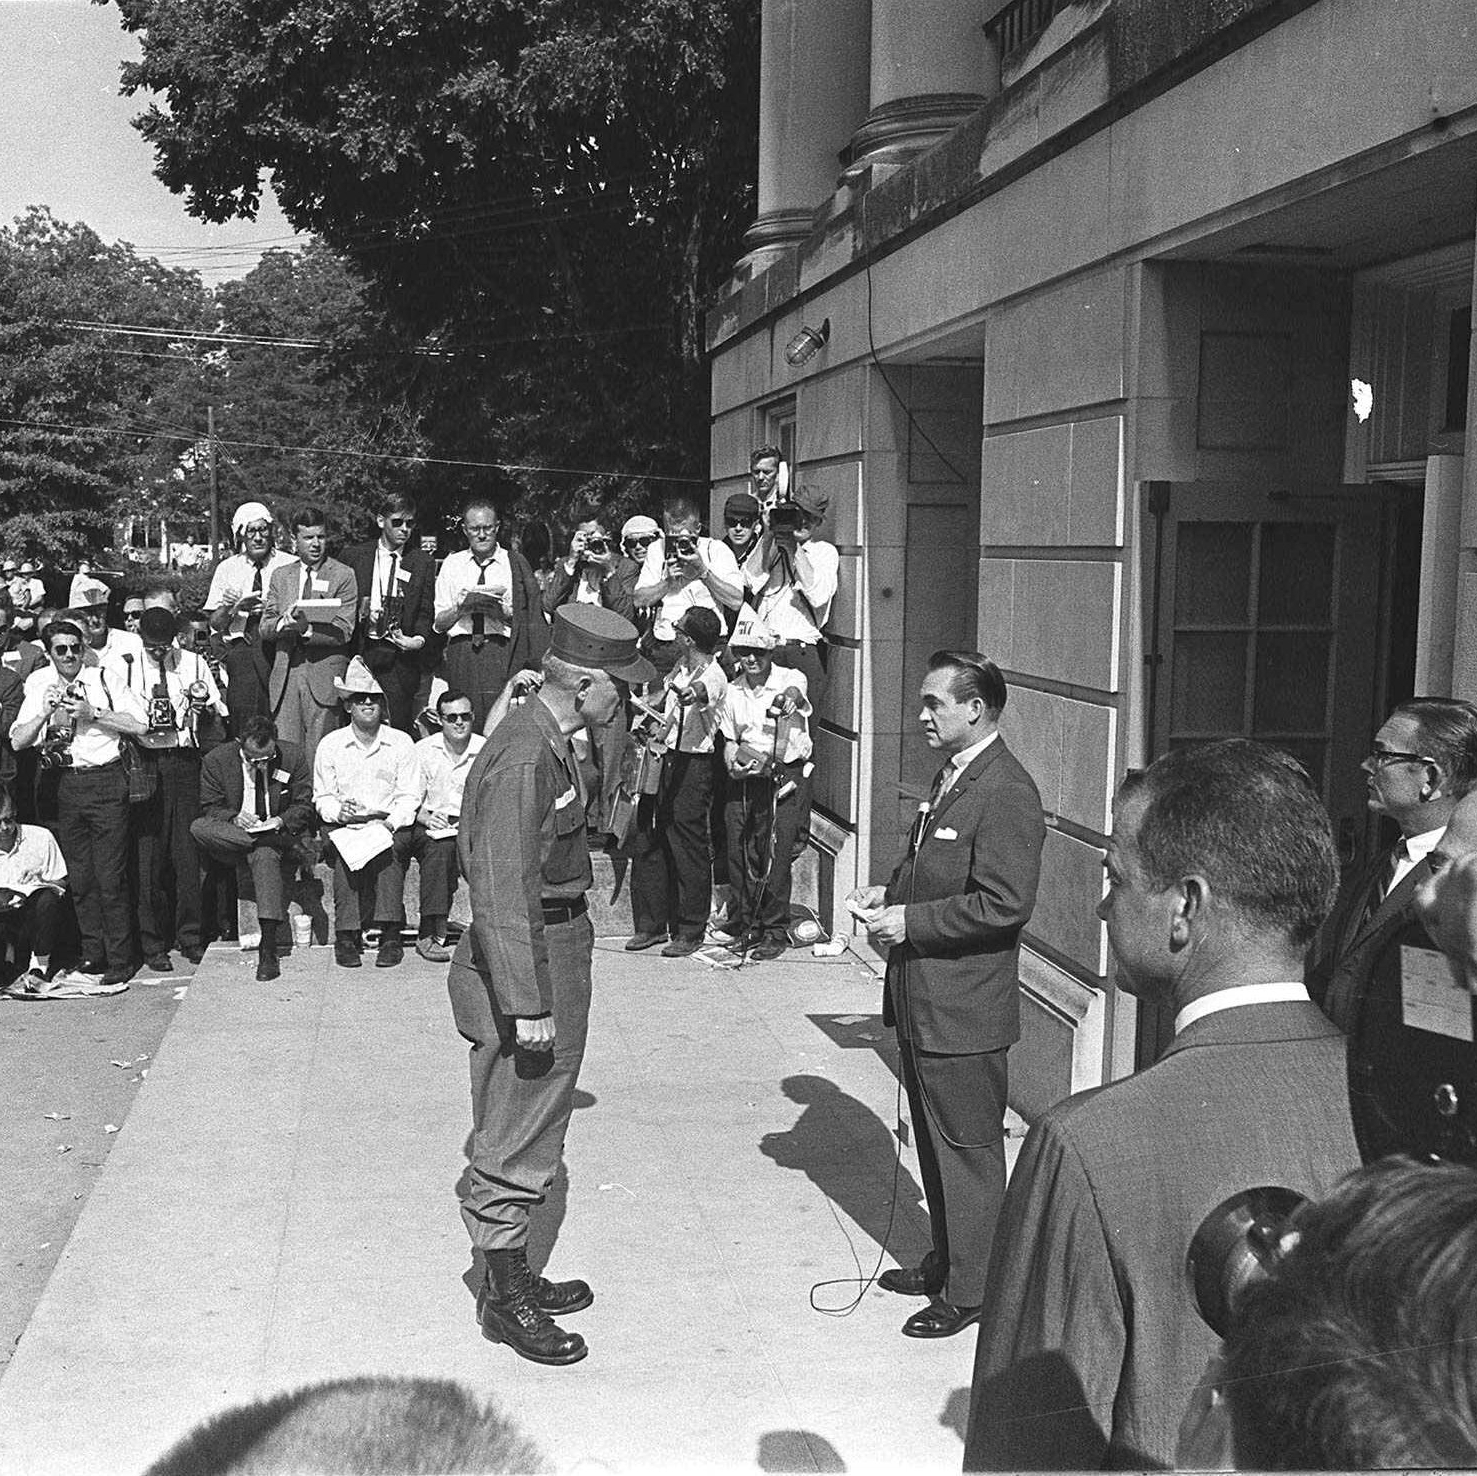 National Guard Brig. Gen. Henry Graham informs Alabama Gov. George Wallace that the guard was under federal control as the two met at the door of Foster Auditorium at the University of Alabama in Tuscaloosa on June 11, 1963. Wallace, who had vowed to prevent integration of the campus, gave way to federal troops.